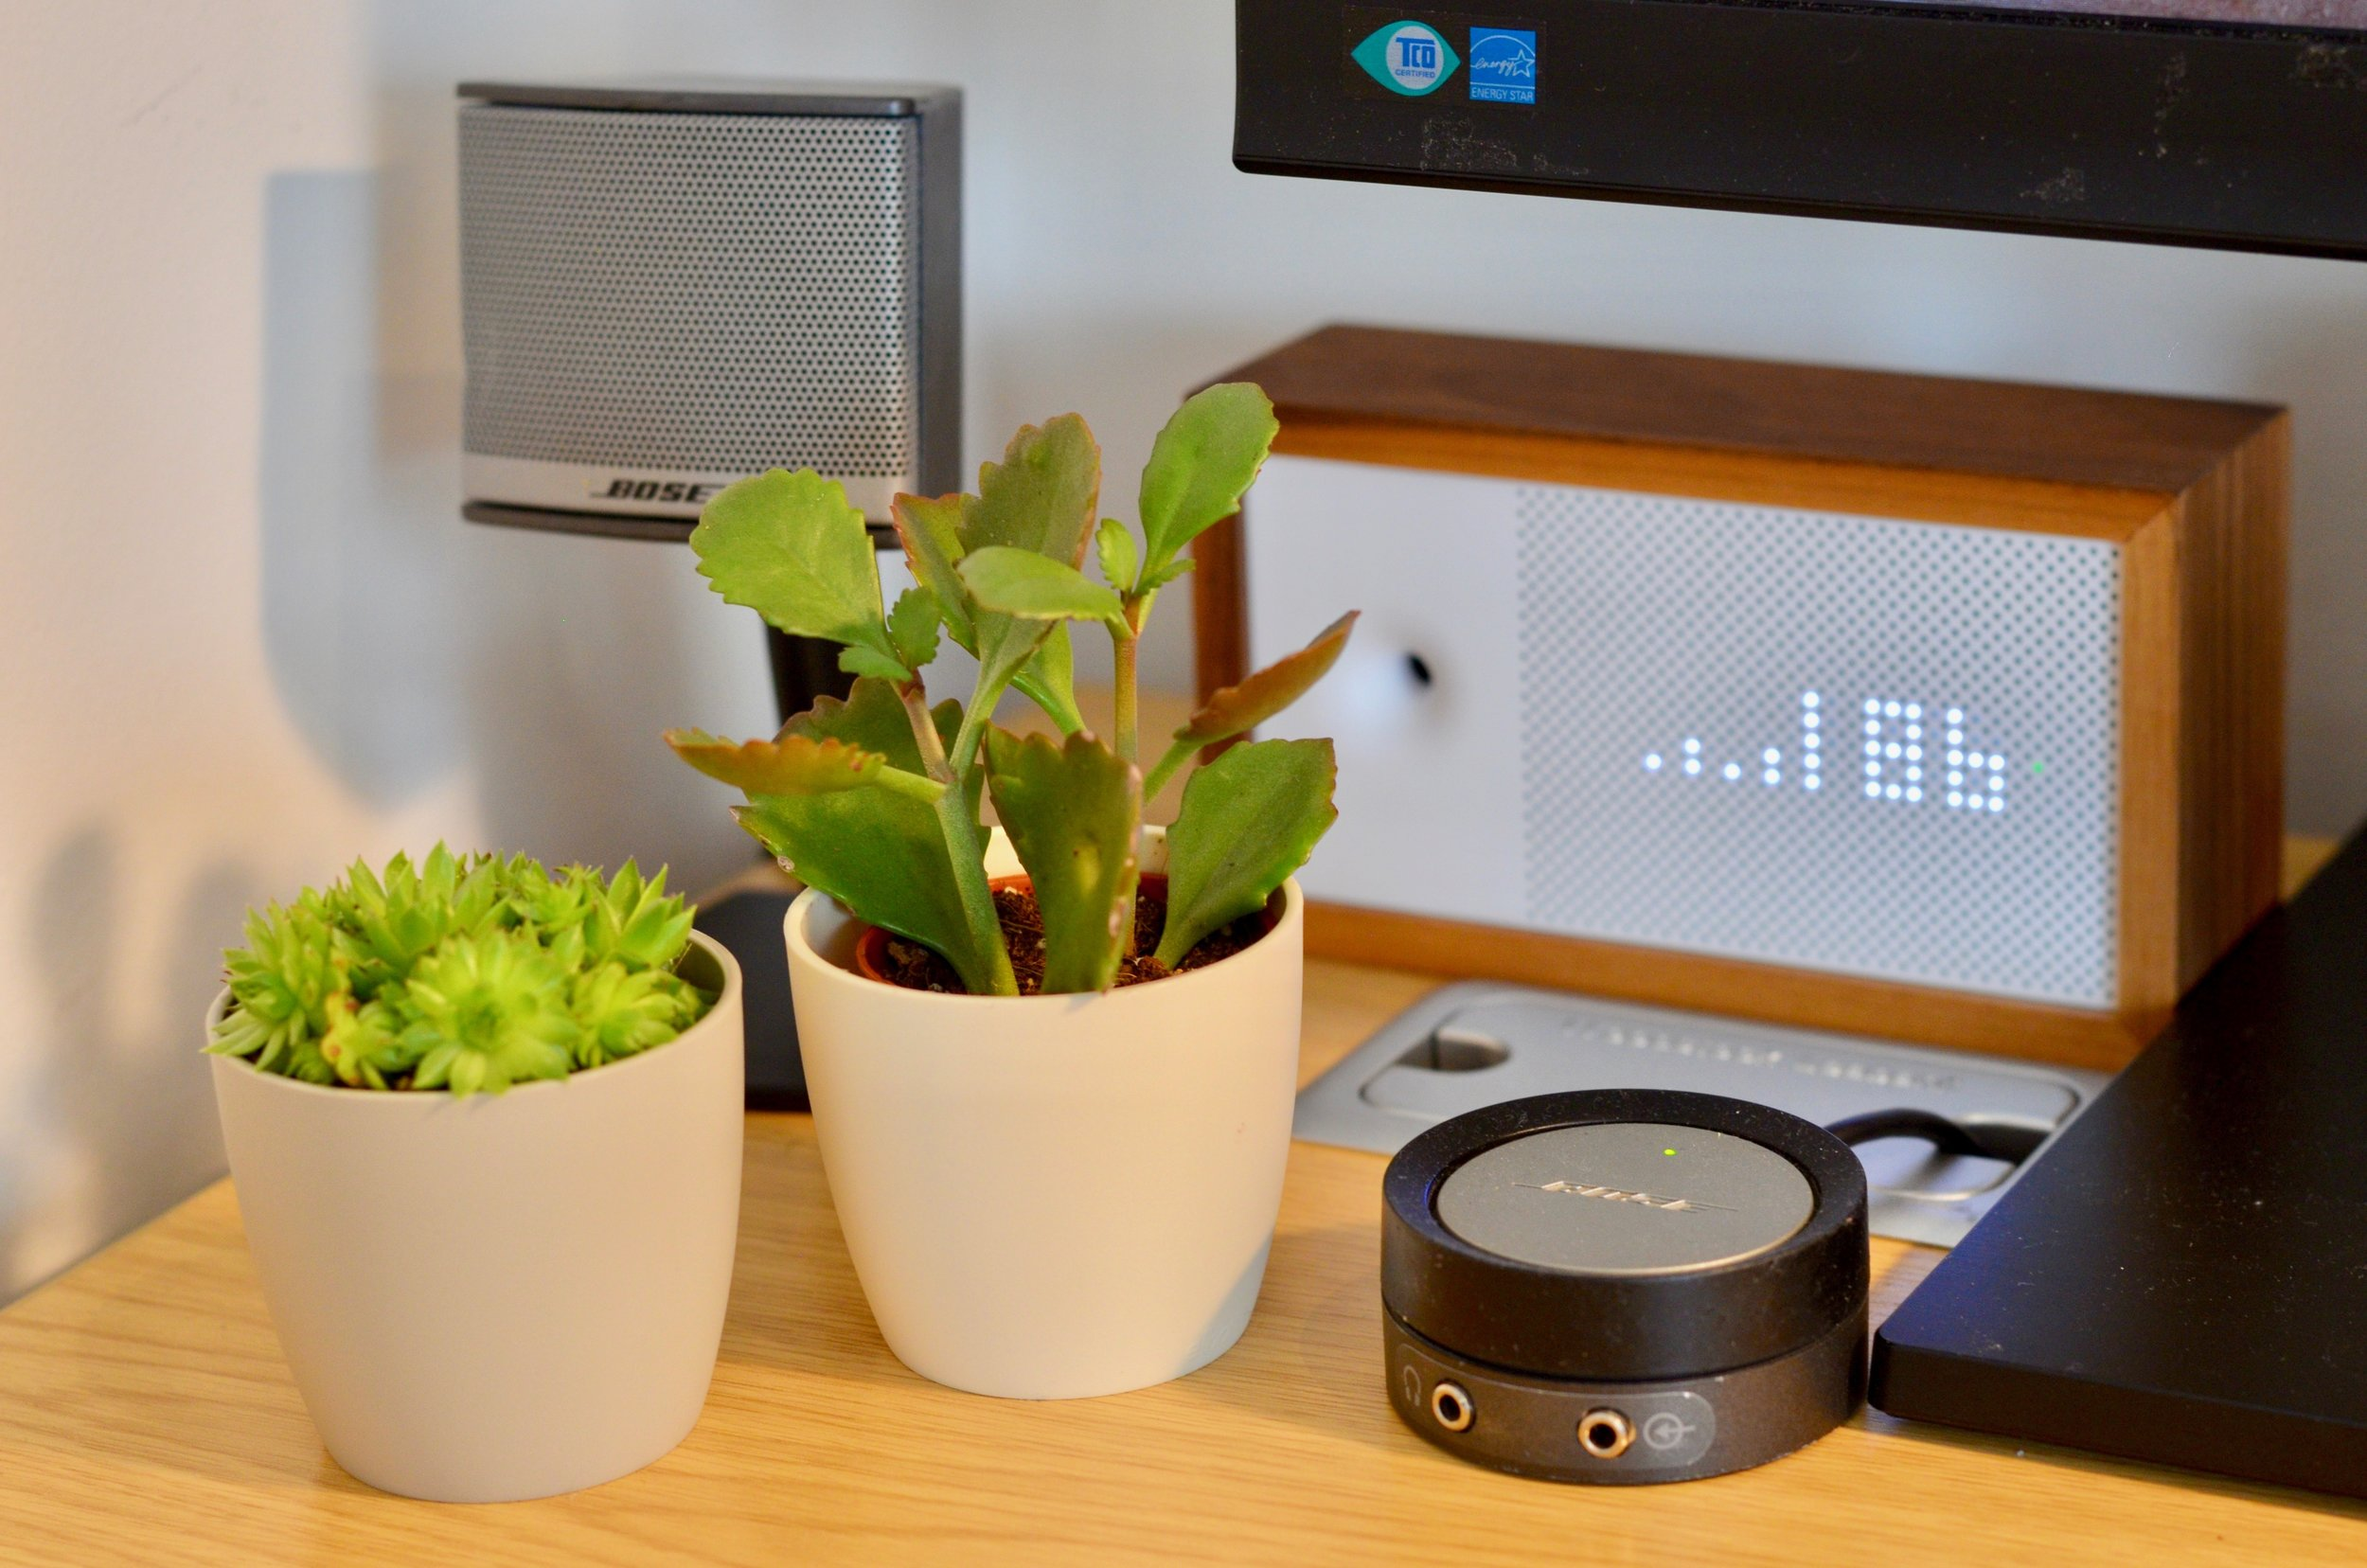 I love this bit - Bose speaker control, succulents and the Awair air quality monitor